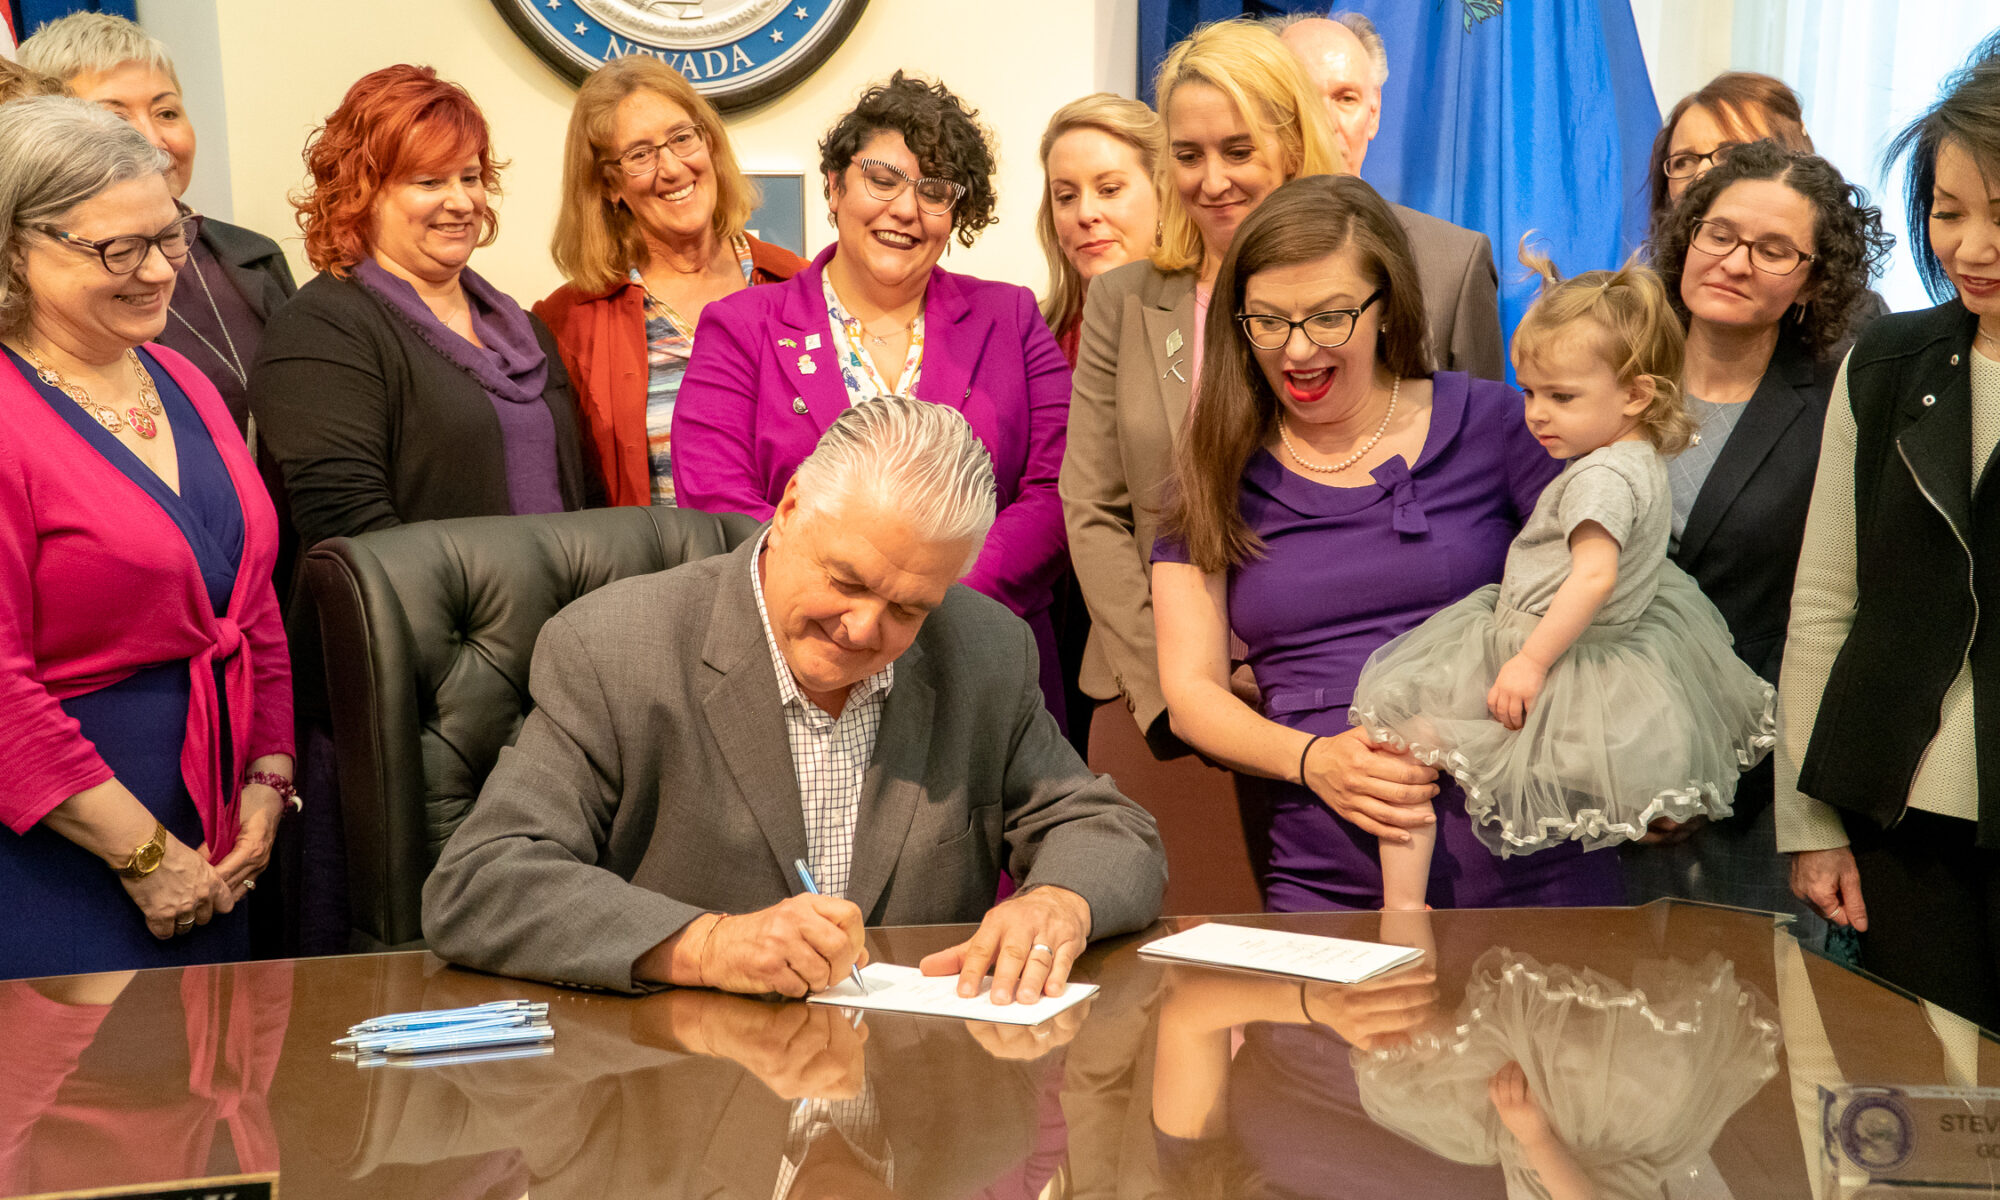 Gov. Steve Sisolak with members of pro-abortion rights groups Planned Parenthood and NARAL Pro-Choice America signing SB179, the Trust Nevada Women Act and SB94, a family planning bill.